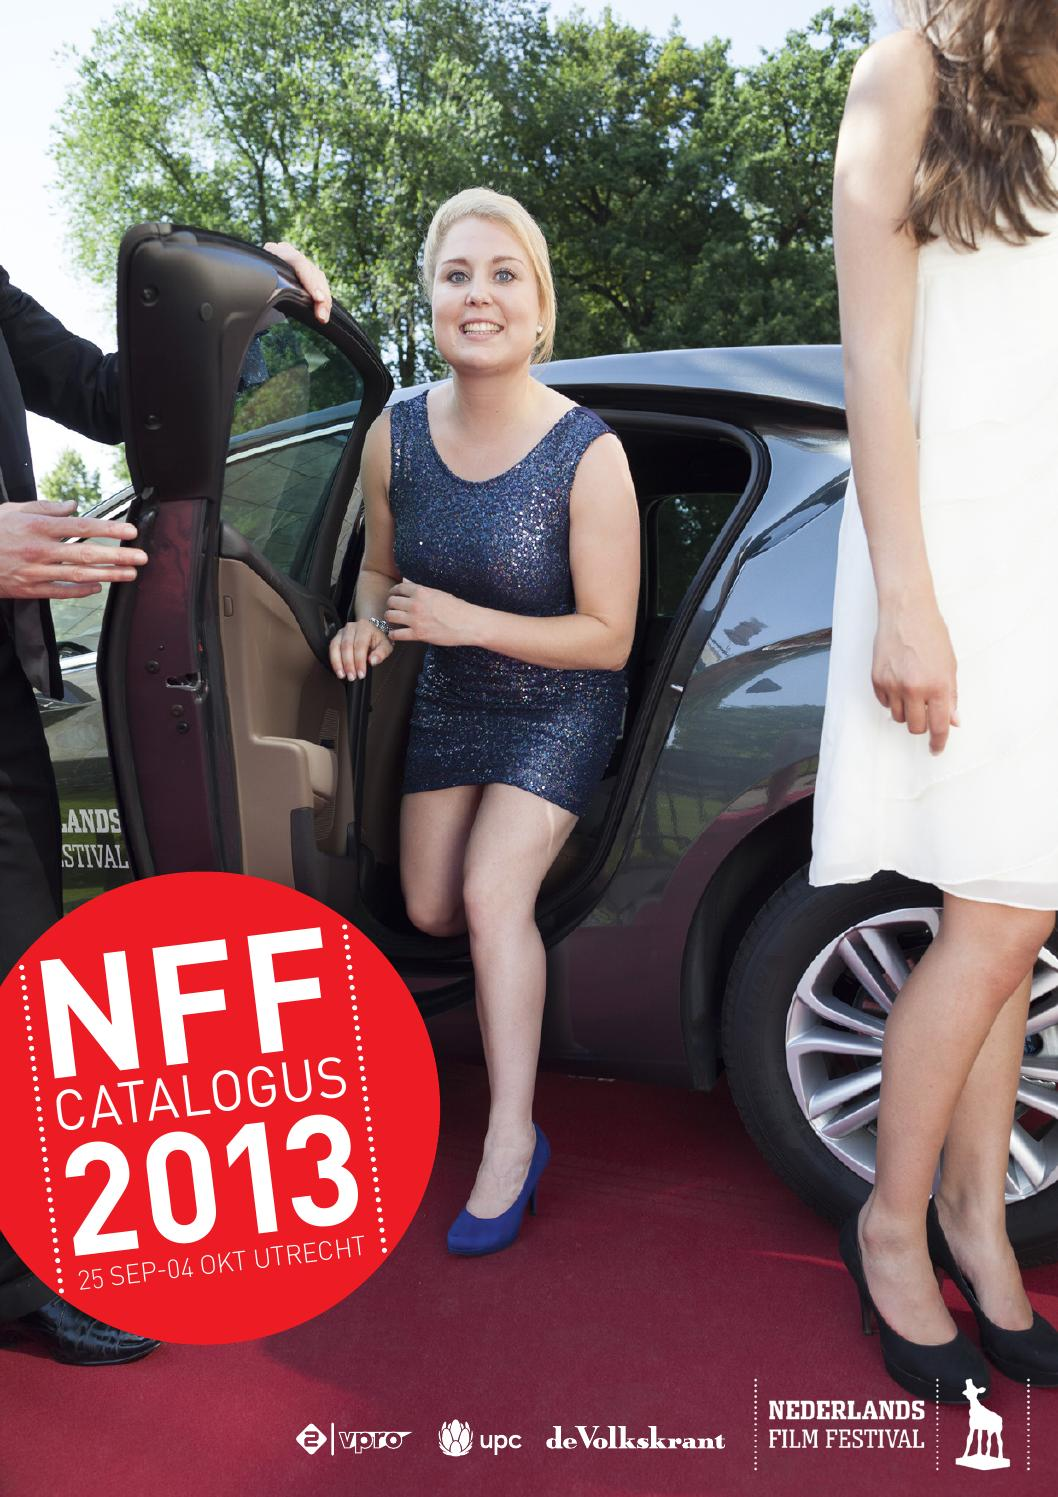 Nff catalogus 2013 by nederlands film festival   issuu